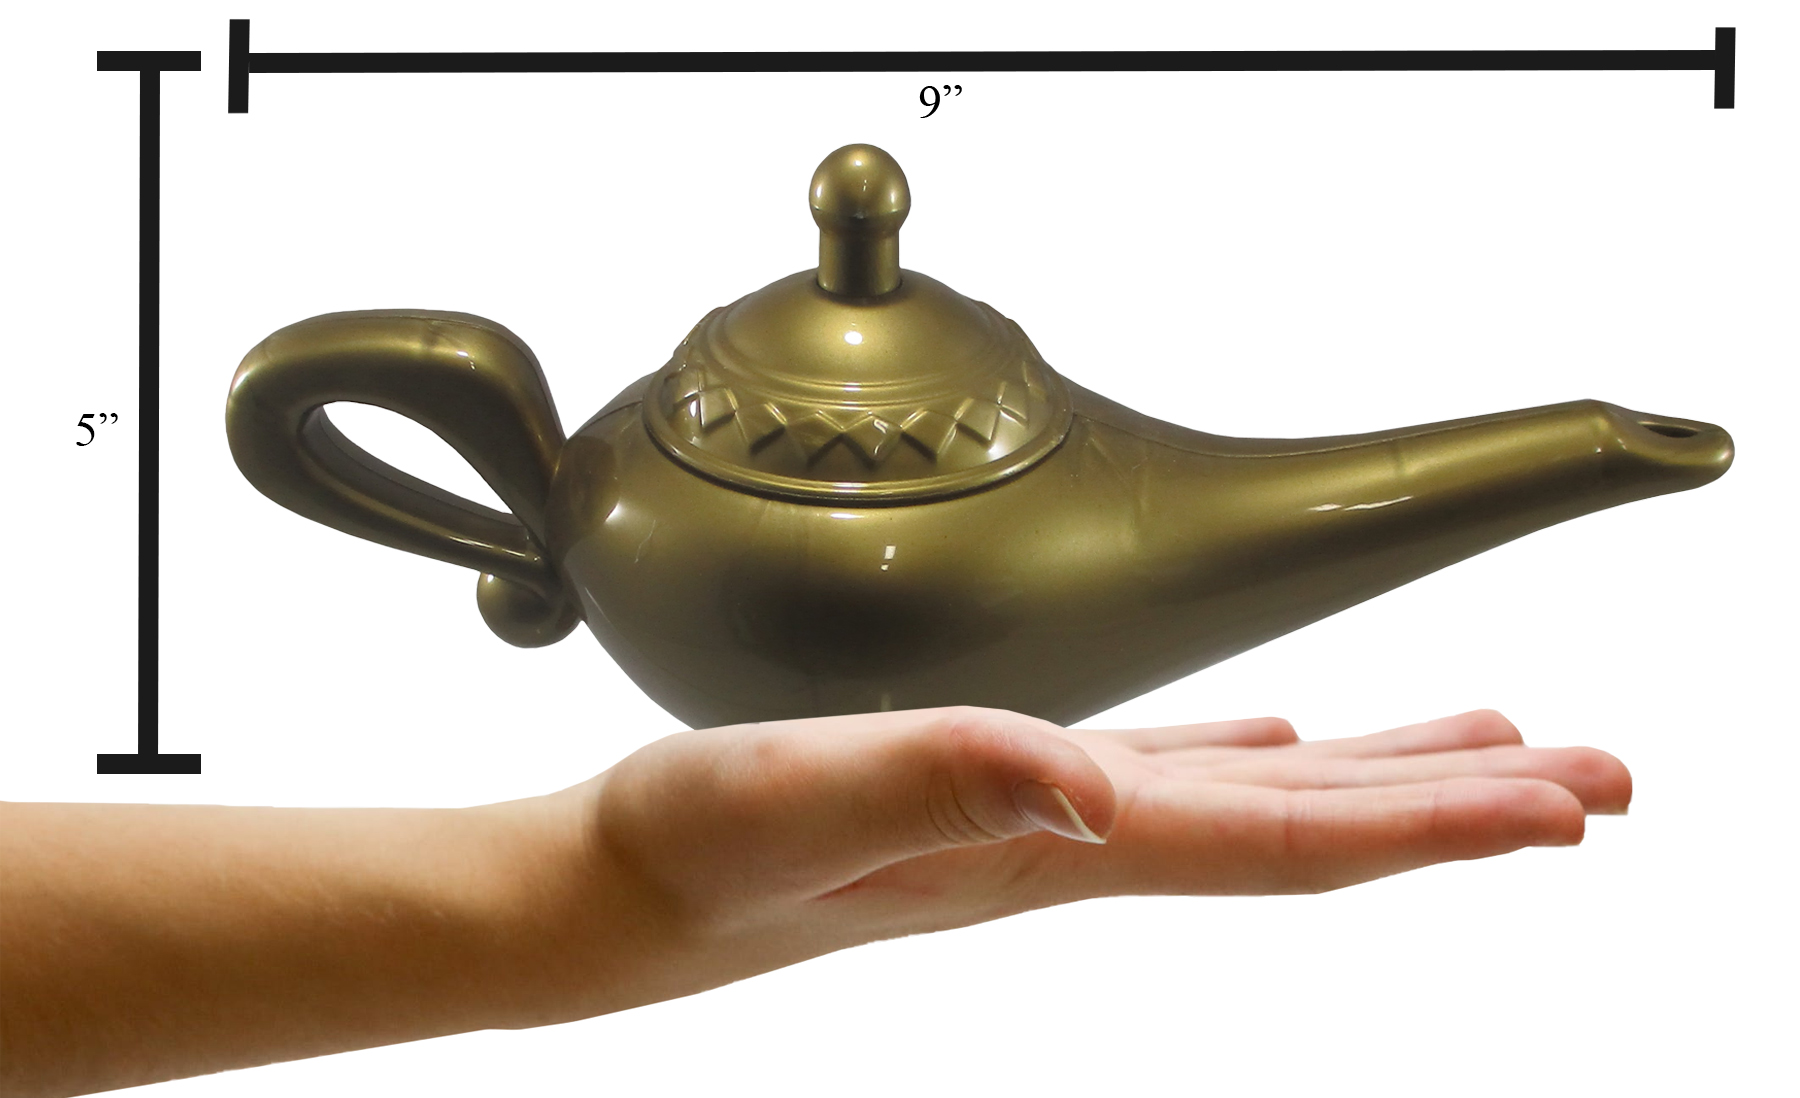 thumbnail 5 - Gold-Genie-Lamp-Plastic-Costume-Accessory-Magical-Prince-Prop-Decoration